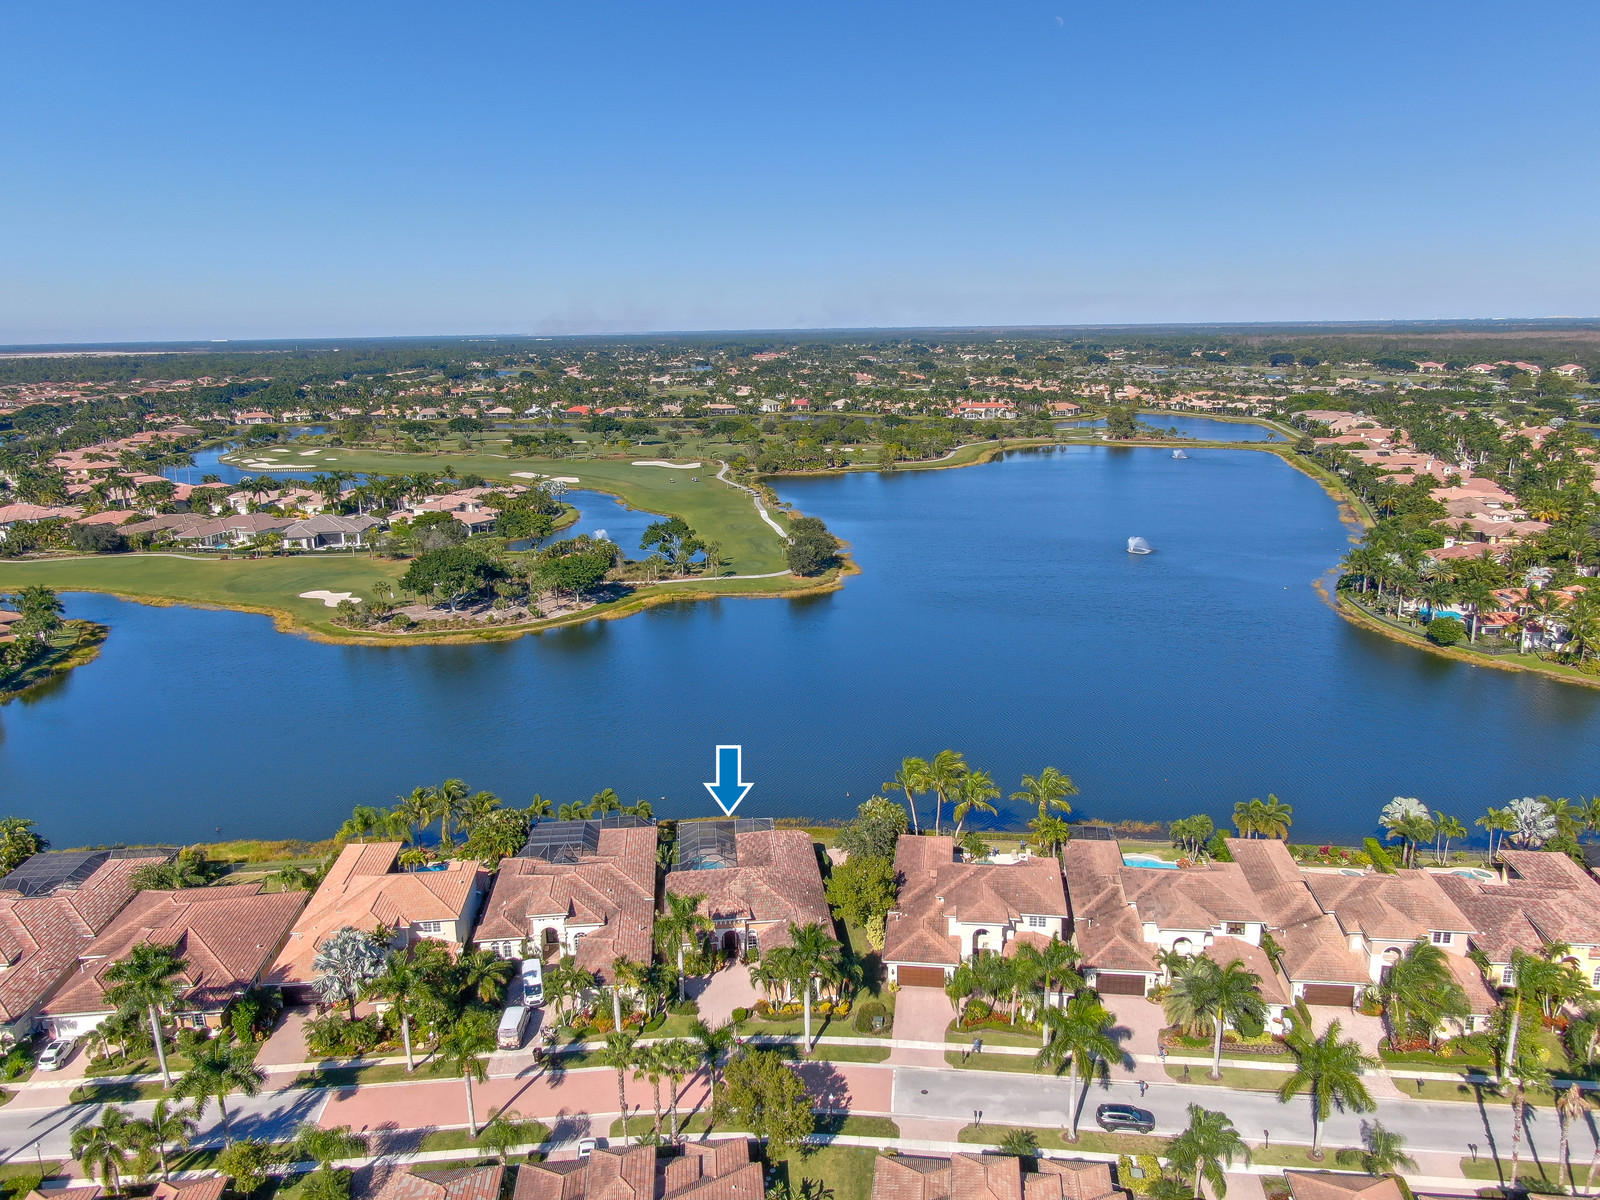 10663 Hollow Bay Terrace, West Palm Beach, Florida 33412, 3 Bedrooms Bedrooms, ,3 BathroomsBathrooms,A,Single family,Hollow Bay,RX-10583834